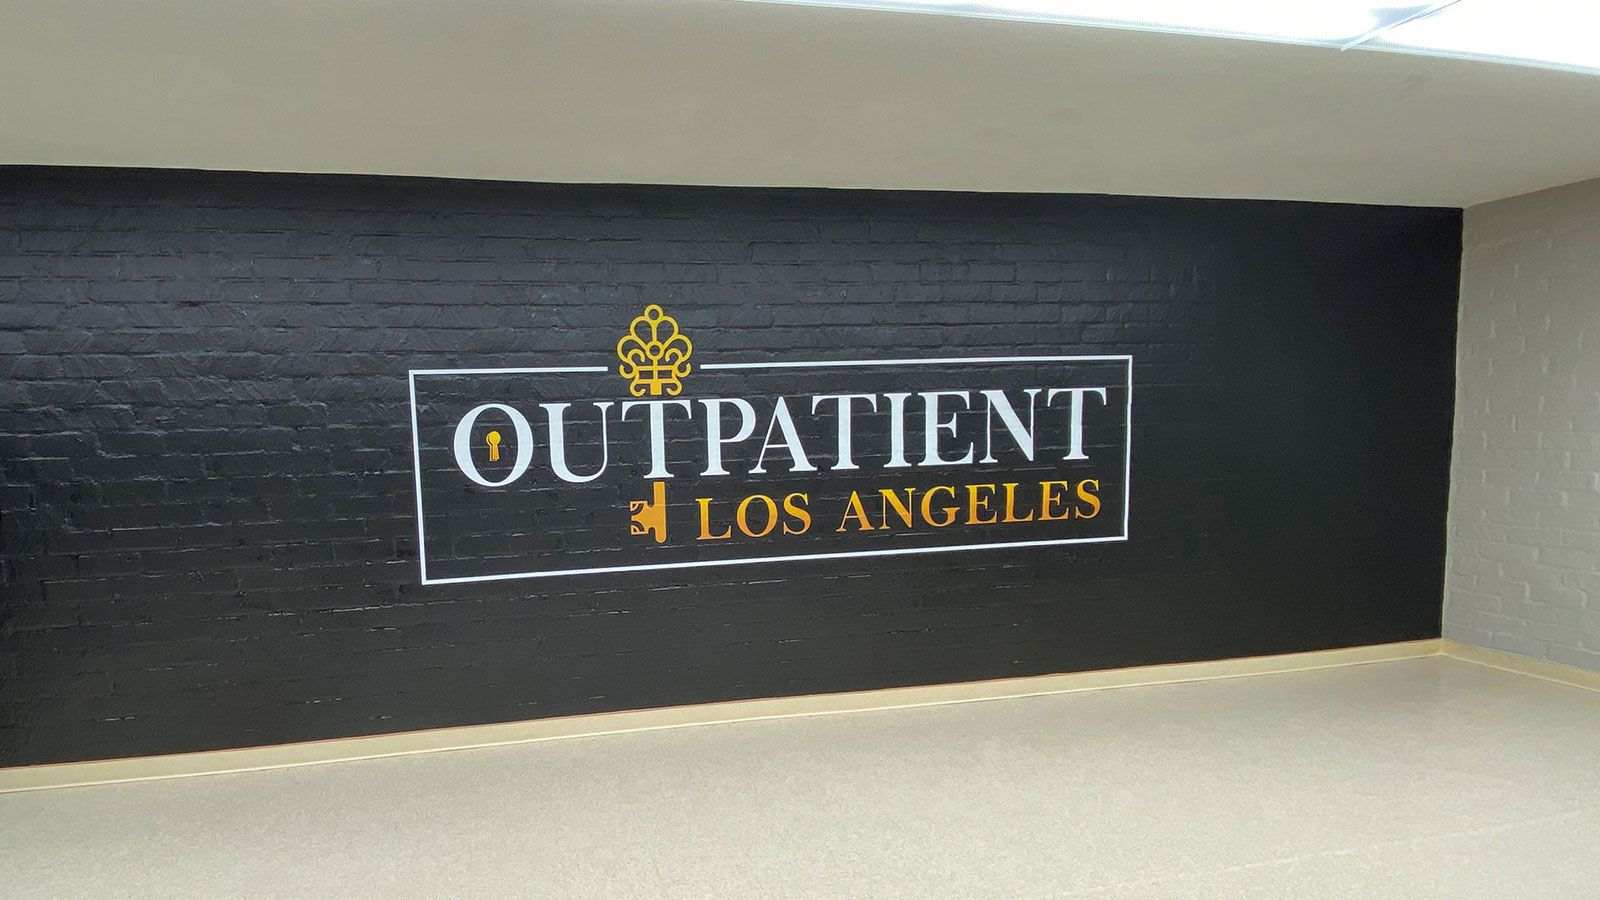 Outpatient wall decal